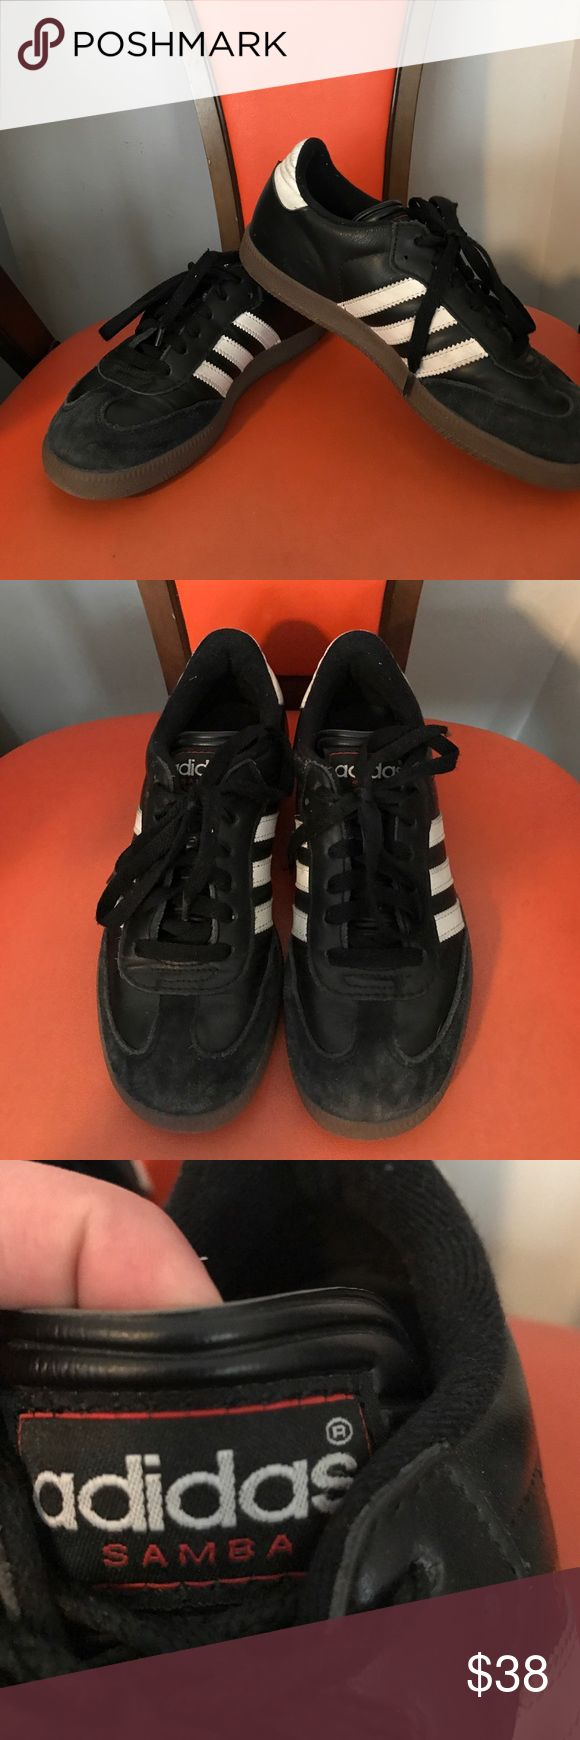 "Adidas Samba Classic Sneakers Excellent condition, little wear. Fits more of a women's size 6 in my opinion. From toe to heel, measures 10"" Adidas Shoes"